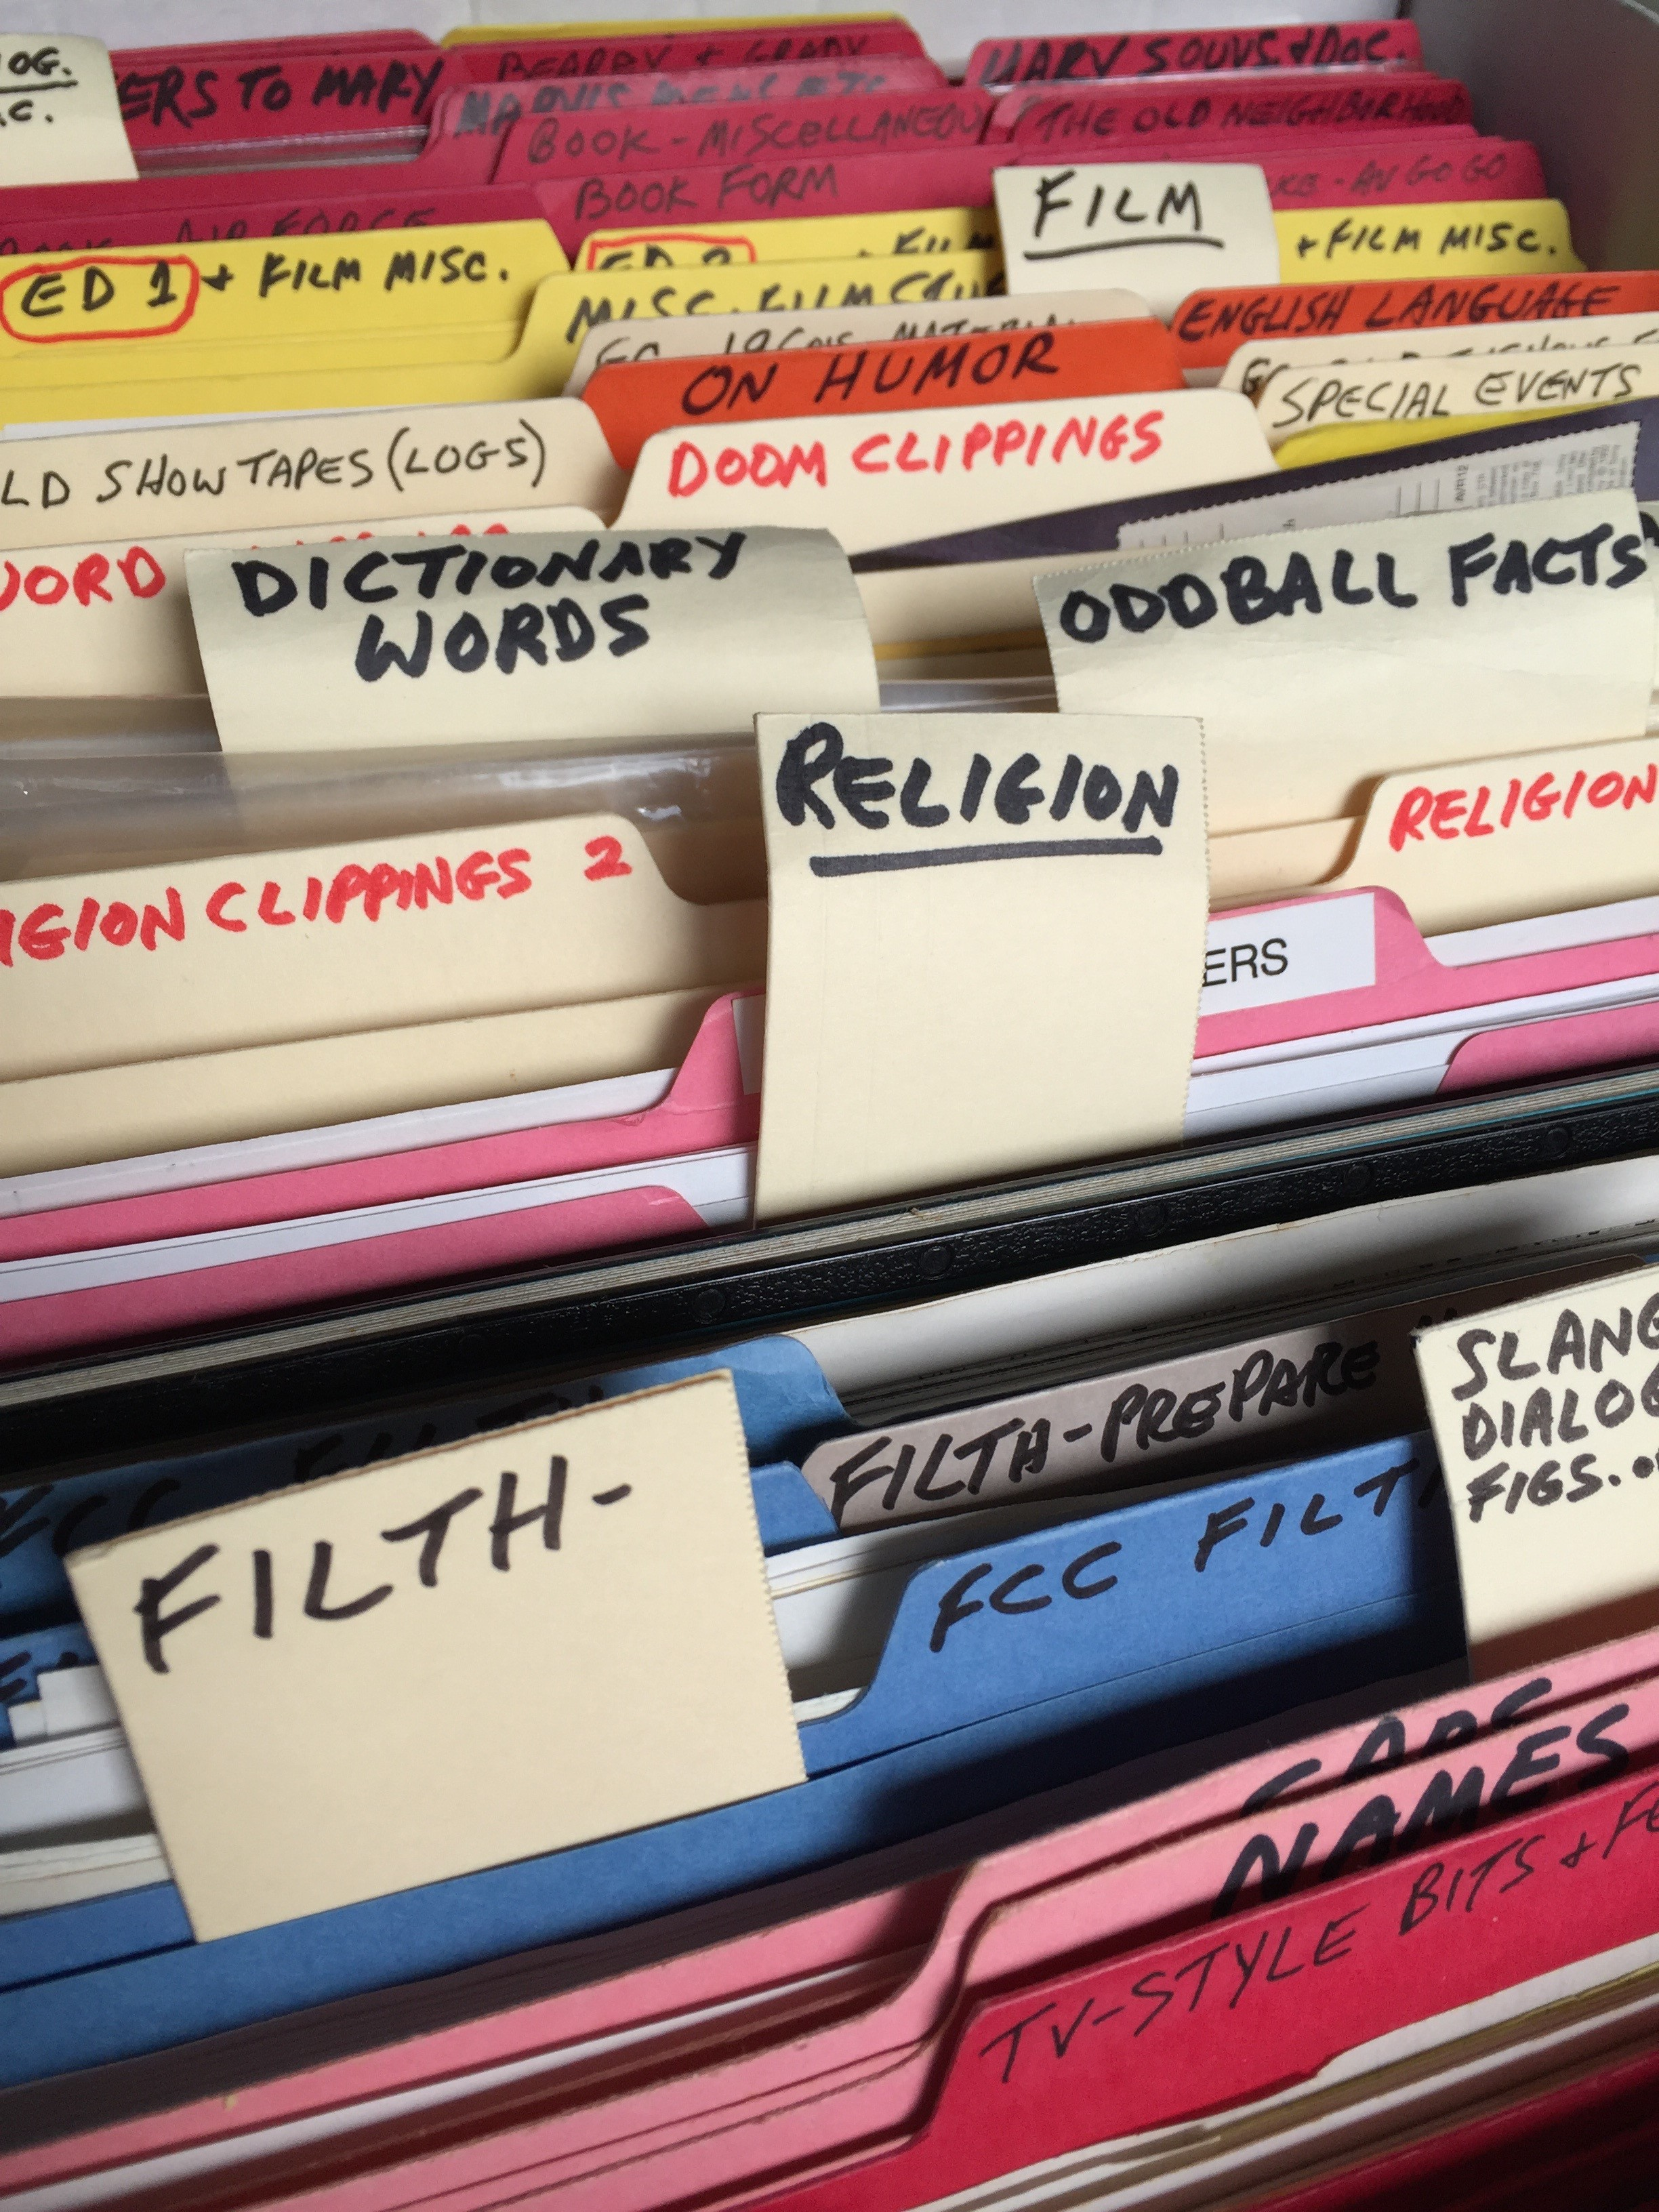 George Carlin's filing system